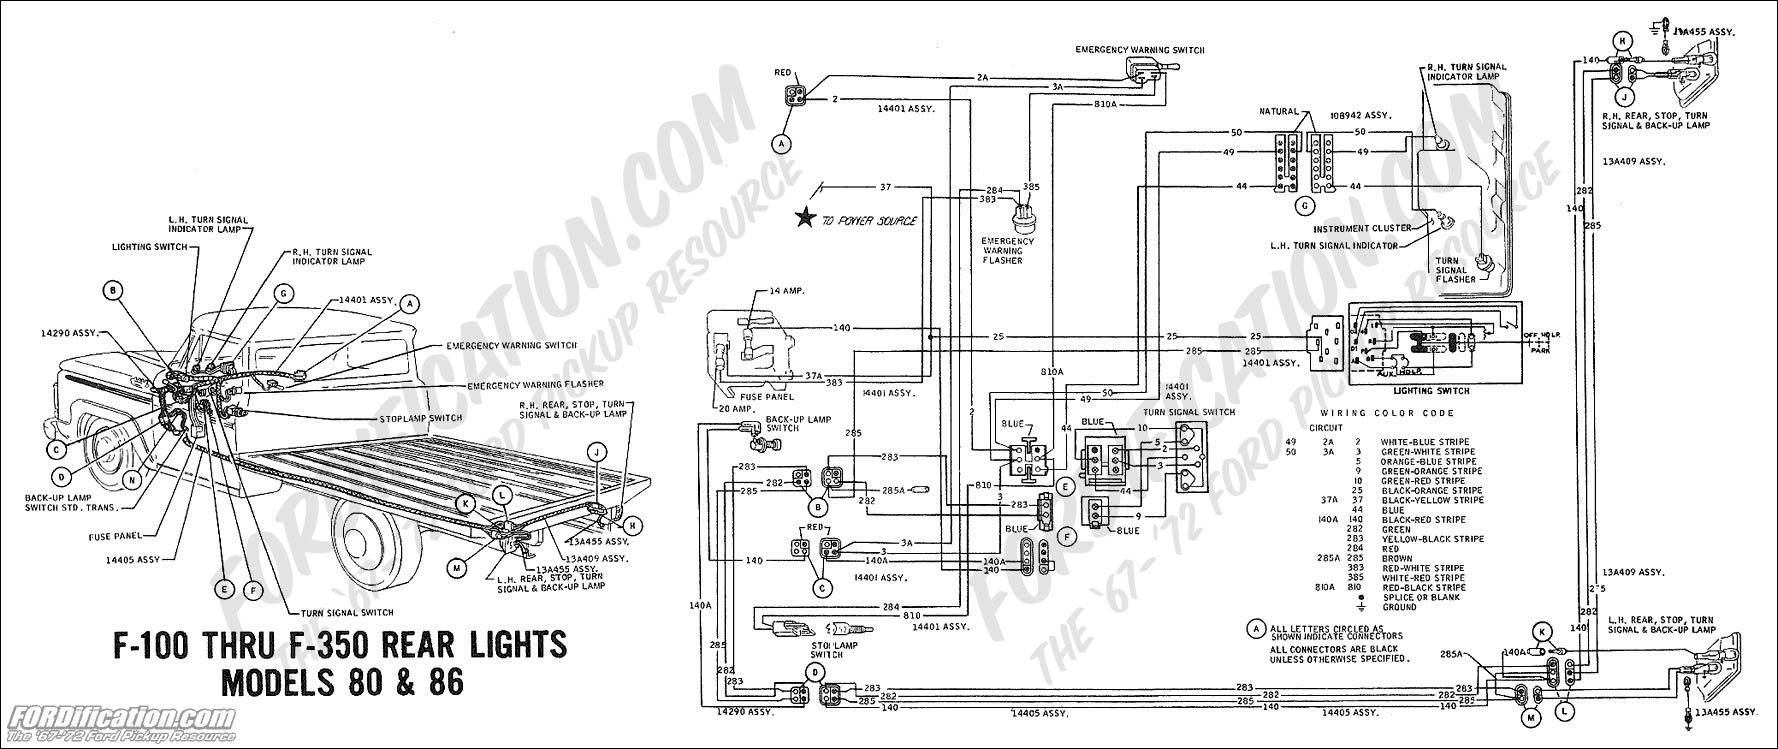 wiring_69rearlights mdls80 86 1994 f700 wiring diagram on 1994 download wirning diagrams 1979 Corvette Fuse Box Diagram at arjmand.co